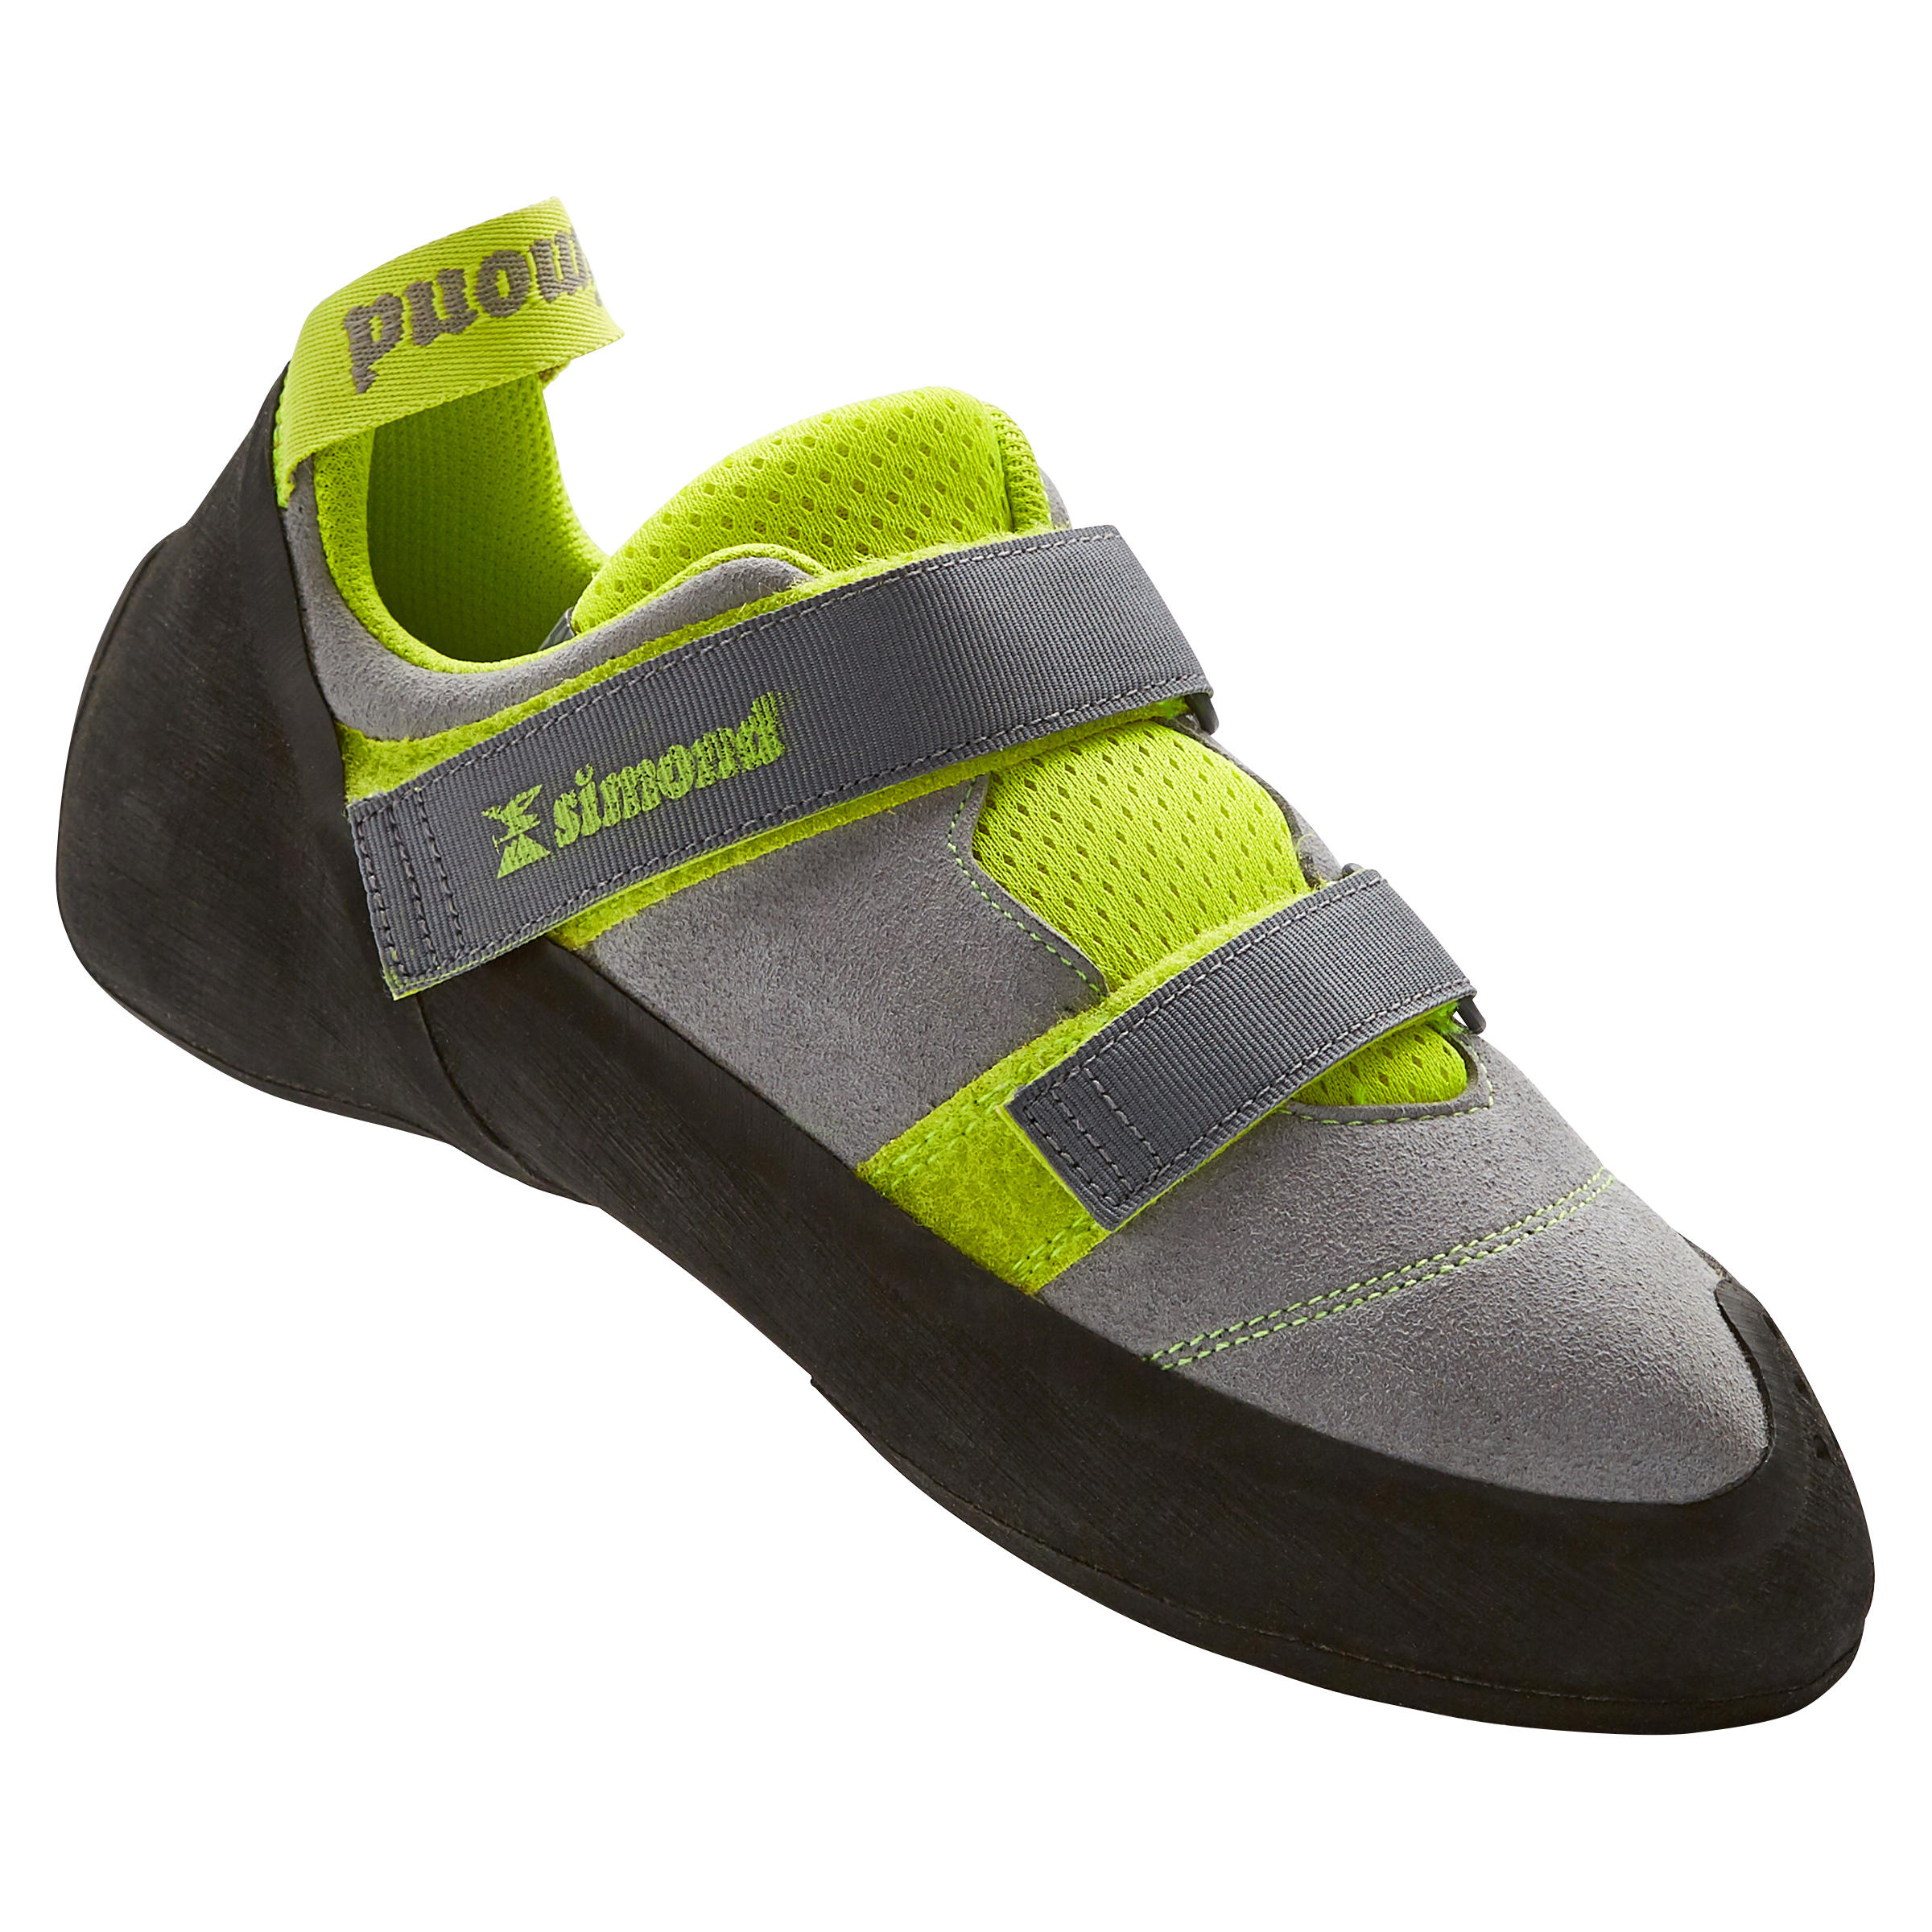 ROCK + Climbing Shoes - Grey